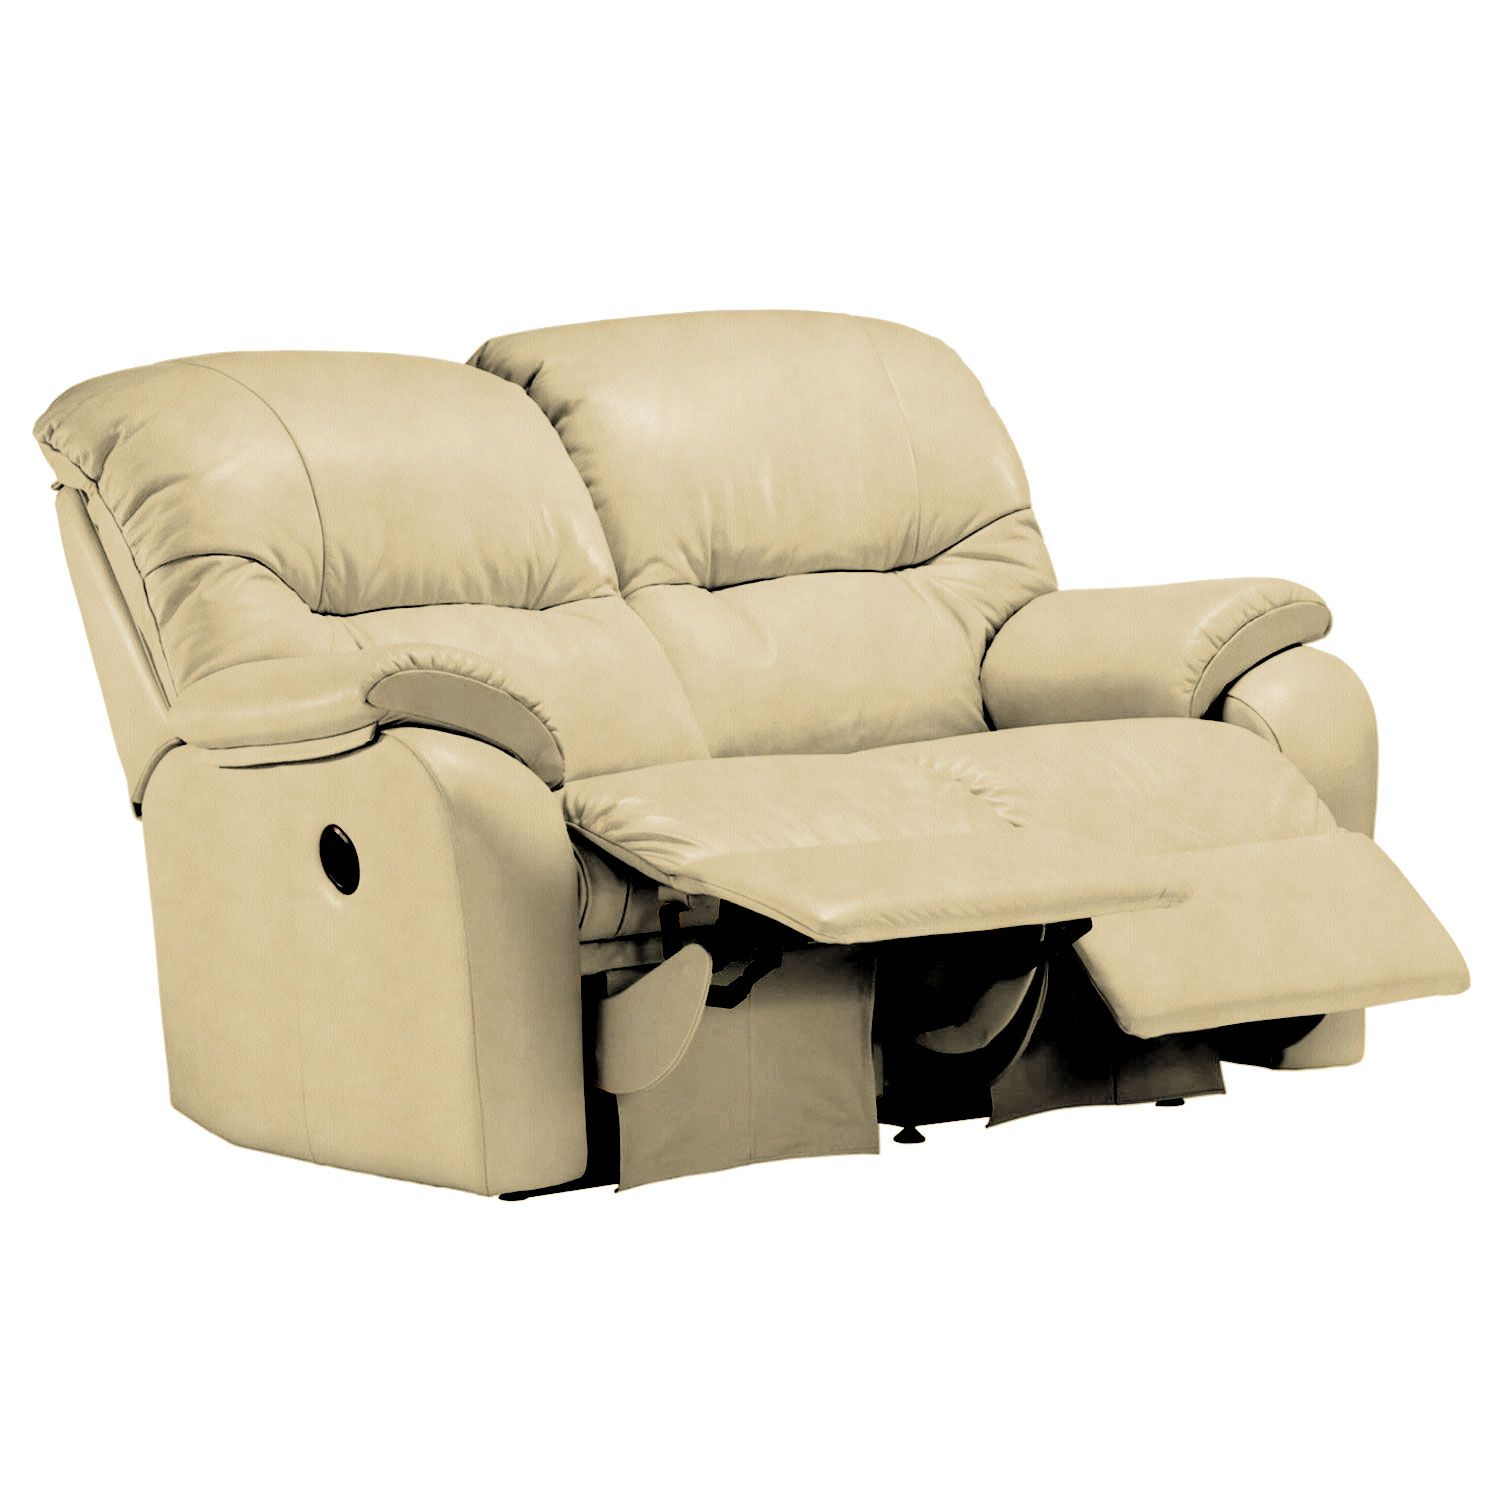 Image of G Plan Mistral 2 Seater Right Power Recliner Leather Sofa